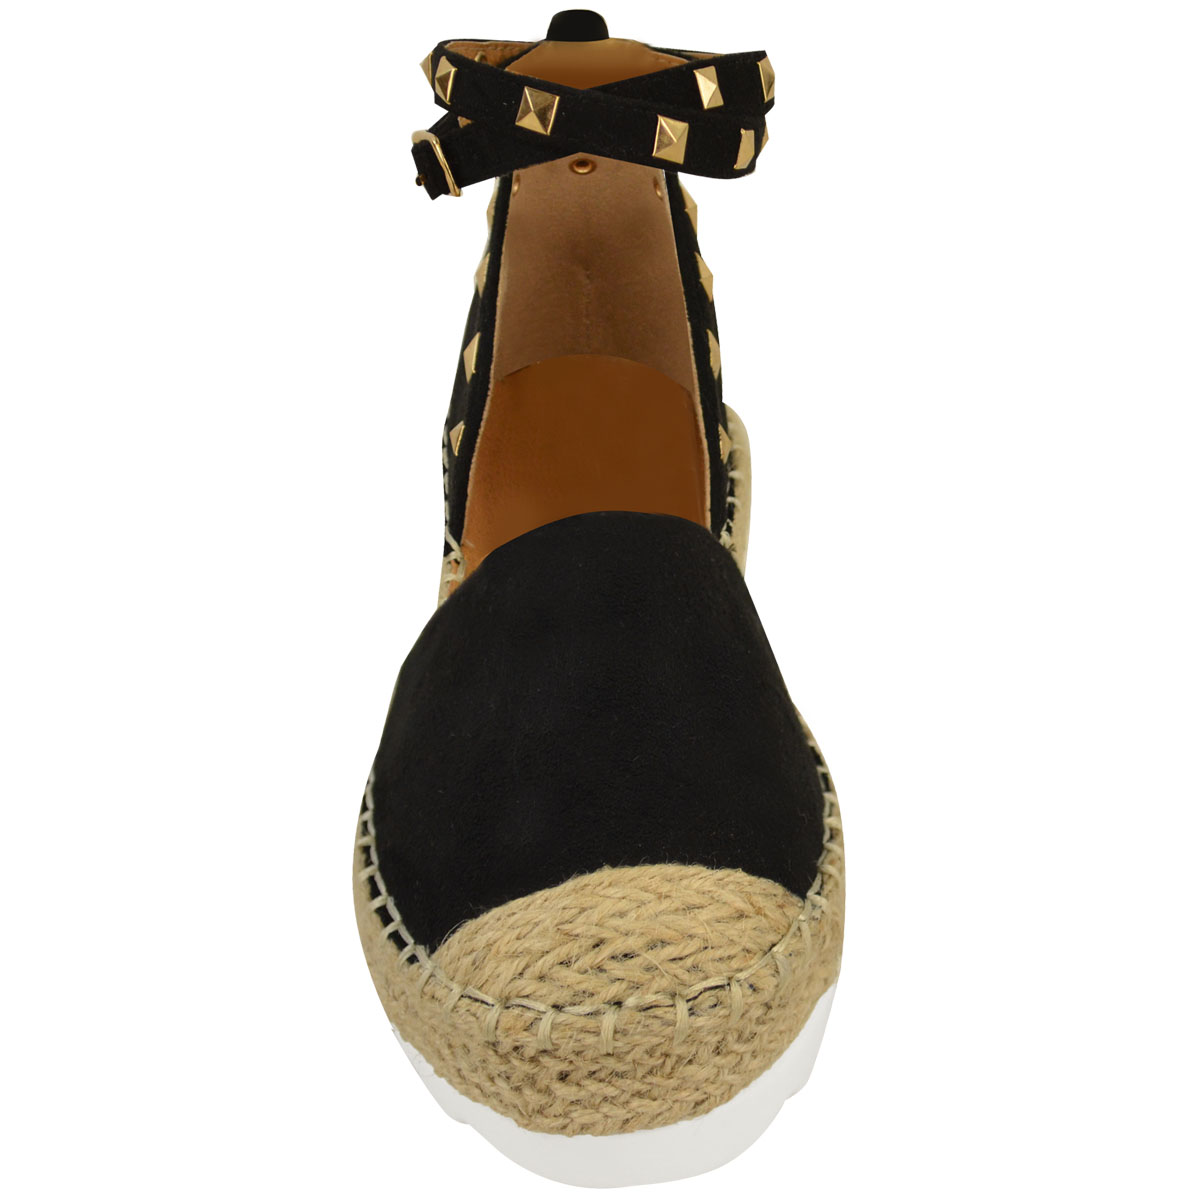 Womens-Ladies-Espadrilles-Flat-Pom-Pom-Sandals-Slip-On-Strappy-Comfy-Size-Shoes thumbnail 9